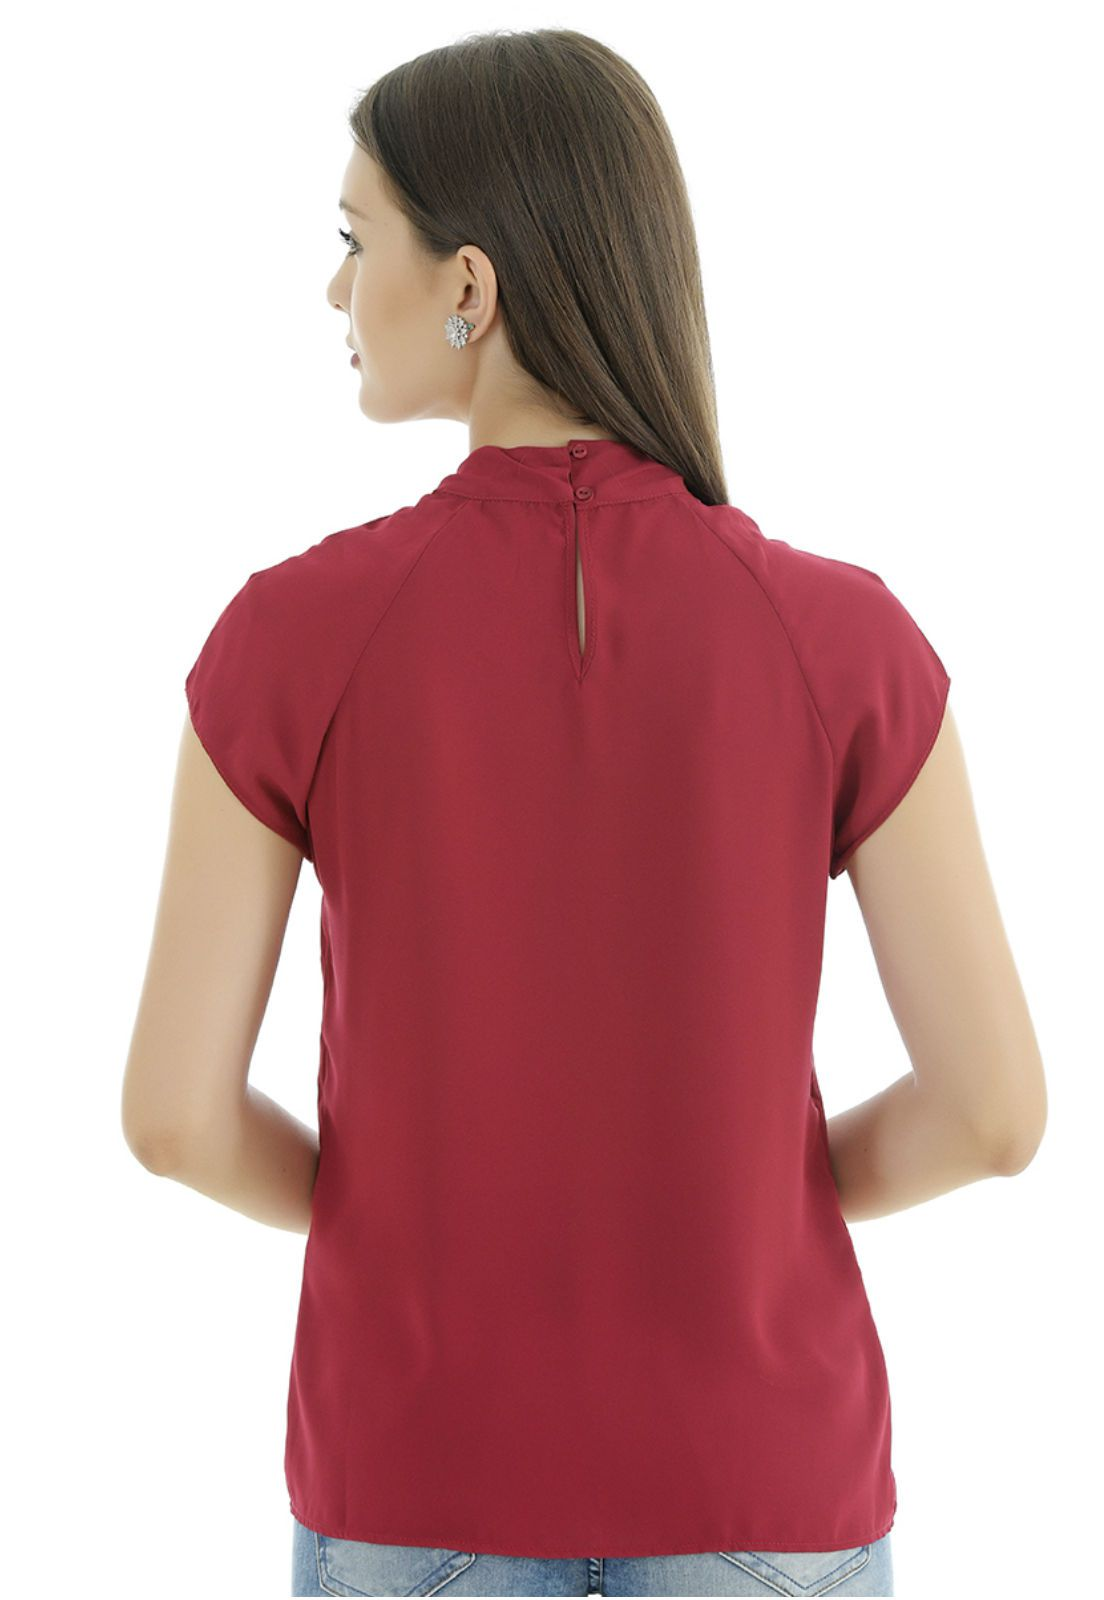 Blusa marsala Unique Chic